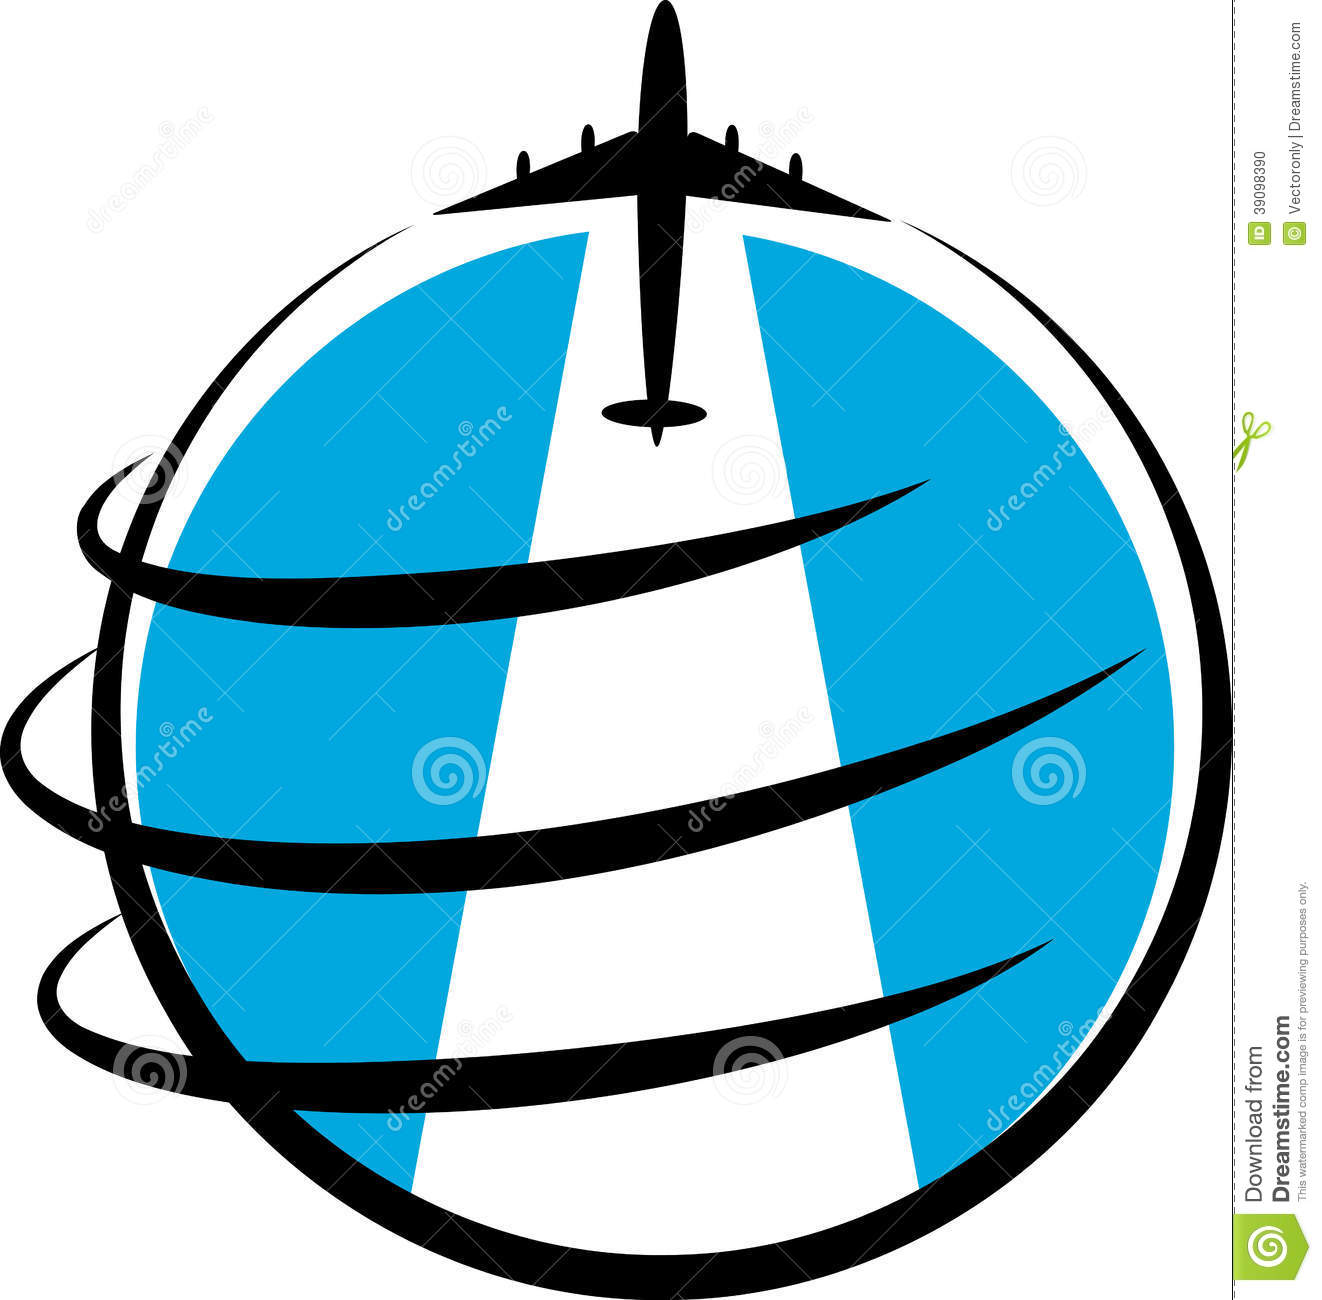 Travel Logo Stock Vector - Image: 39098390